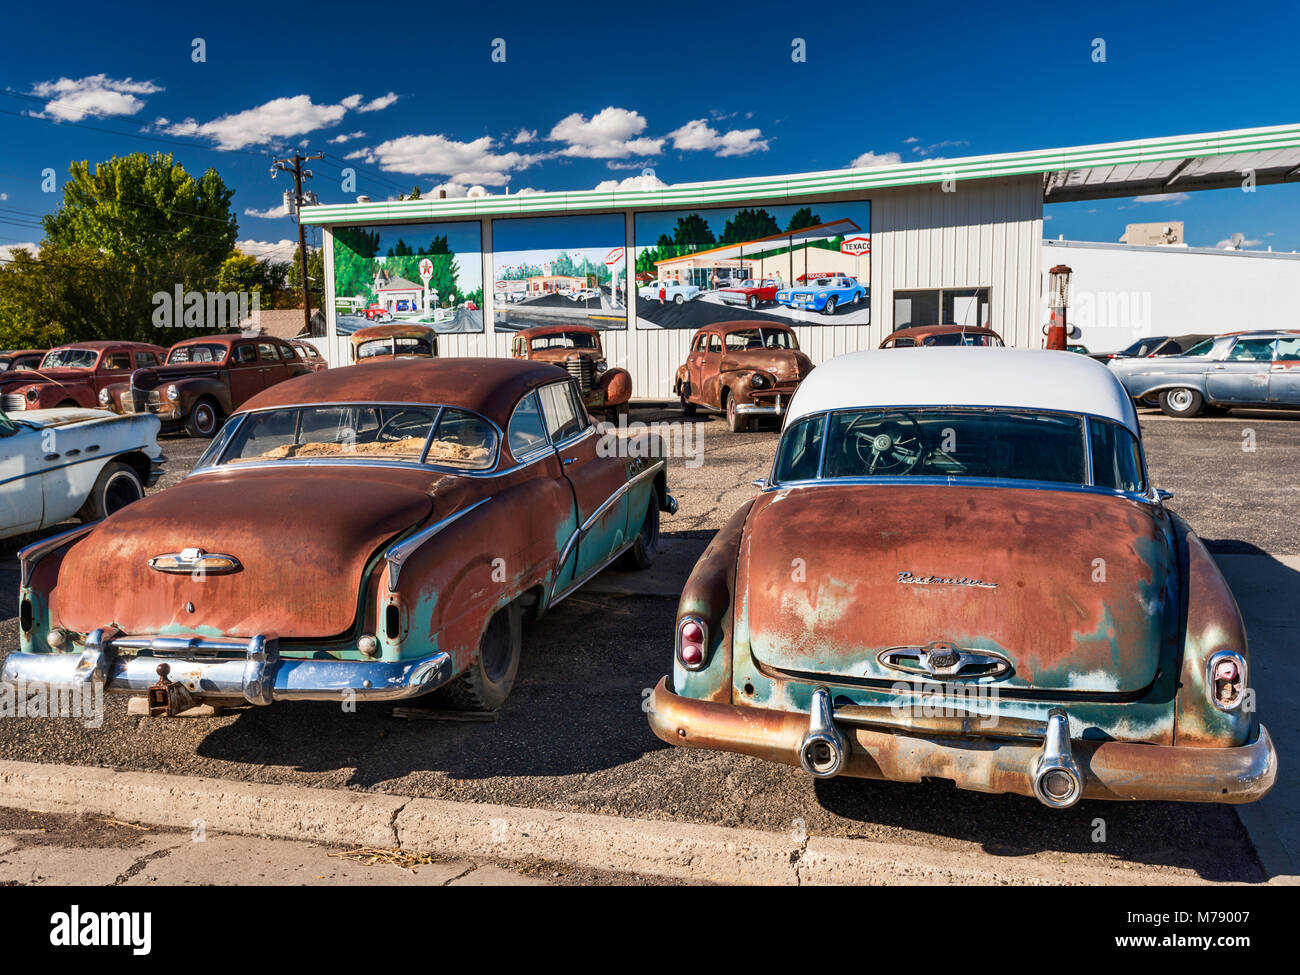 Old, rusted cars for sale, murals behind on wall of service station ...